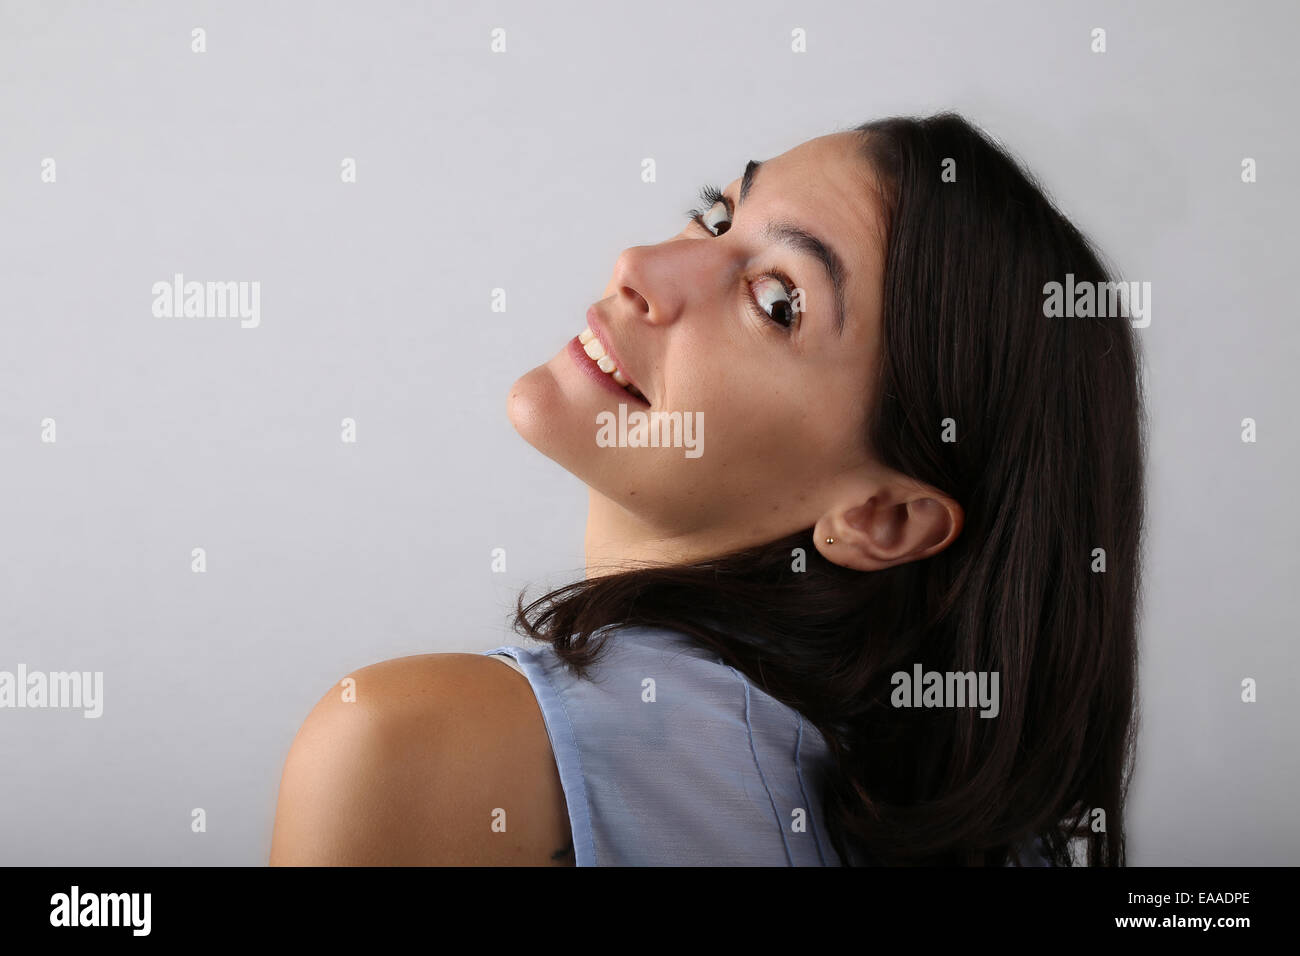 Attractive woman shot from her back leaning her head back toward the camera in a studio - Stock Image